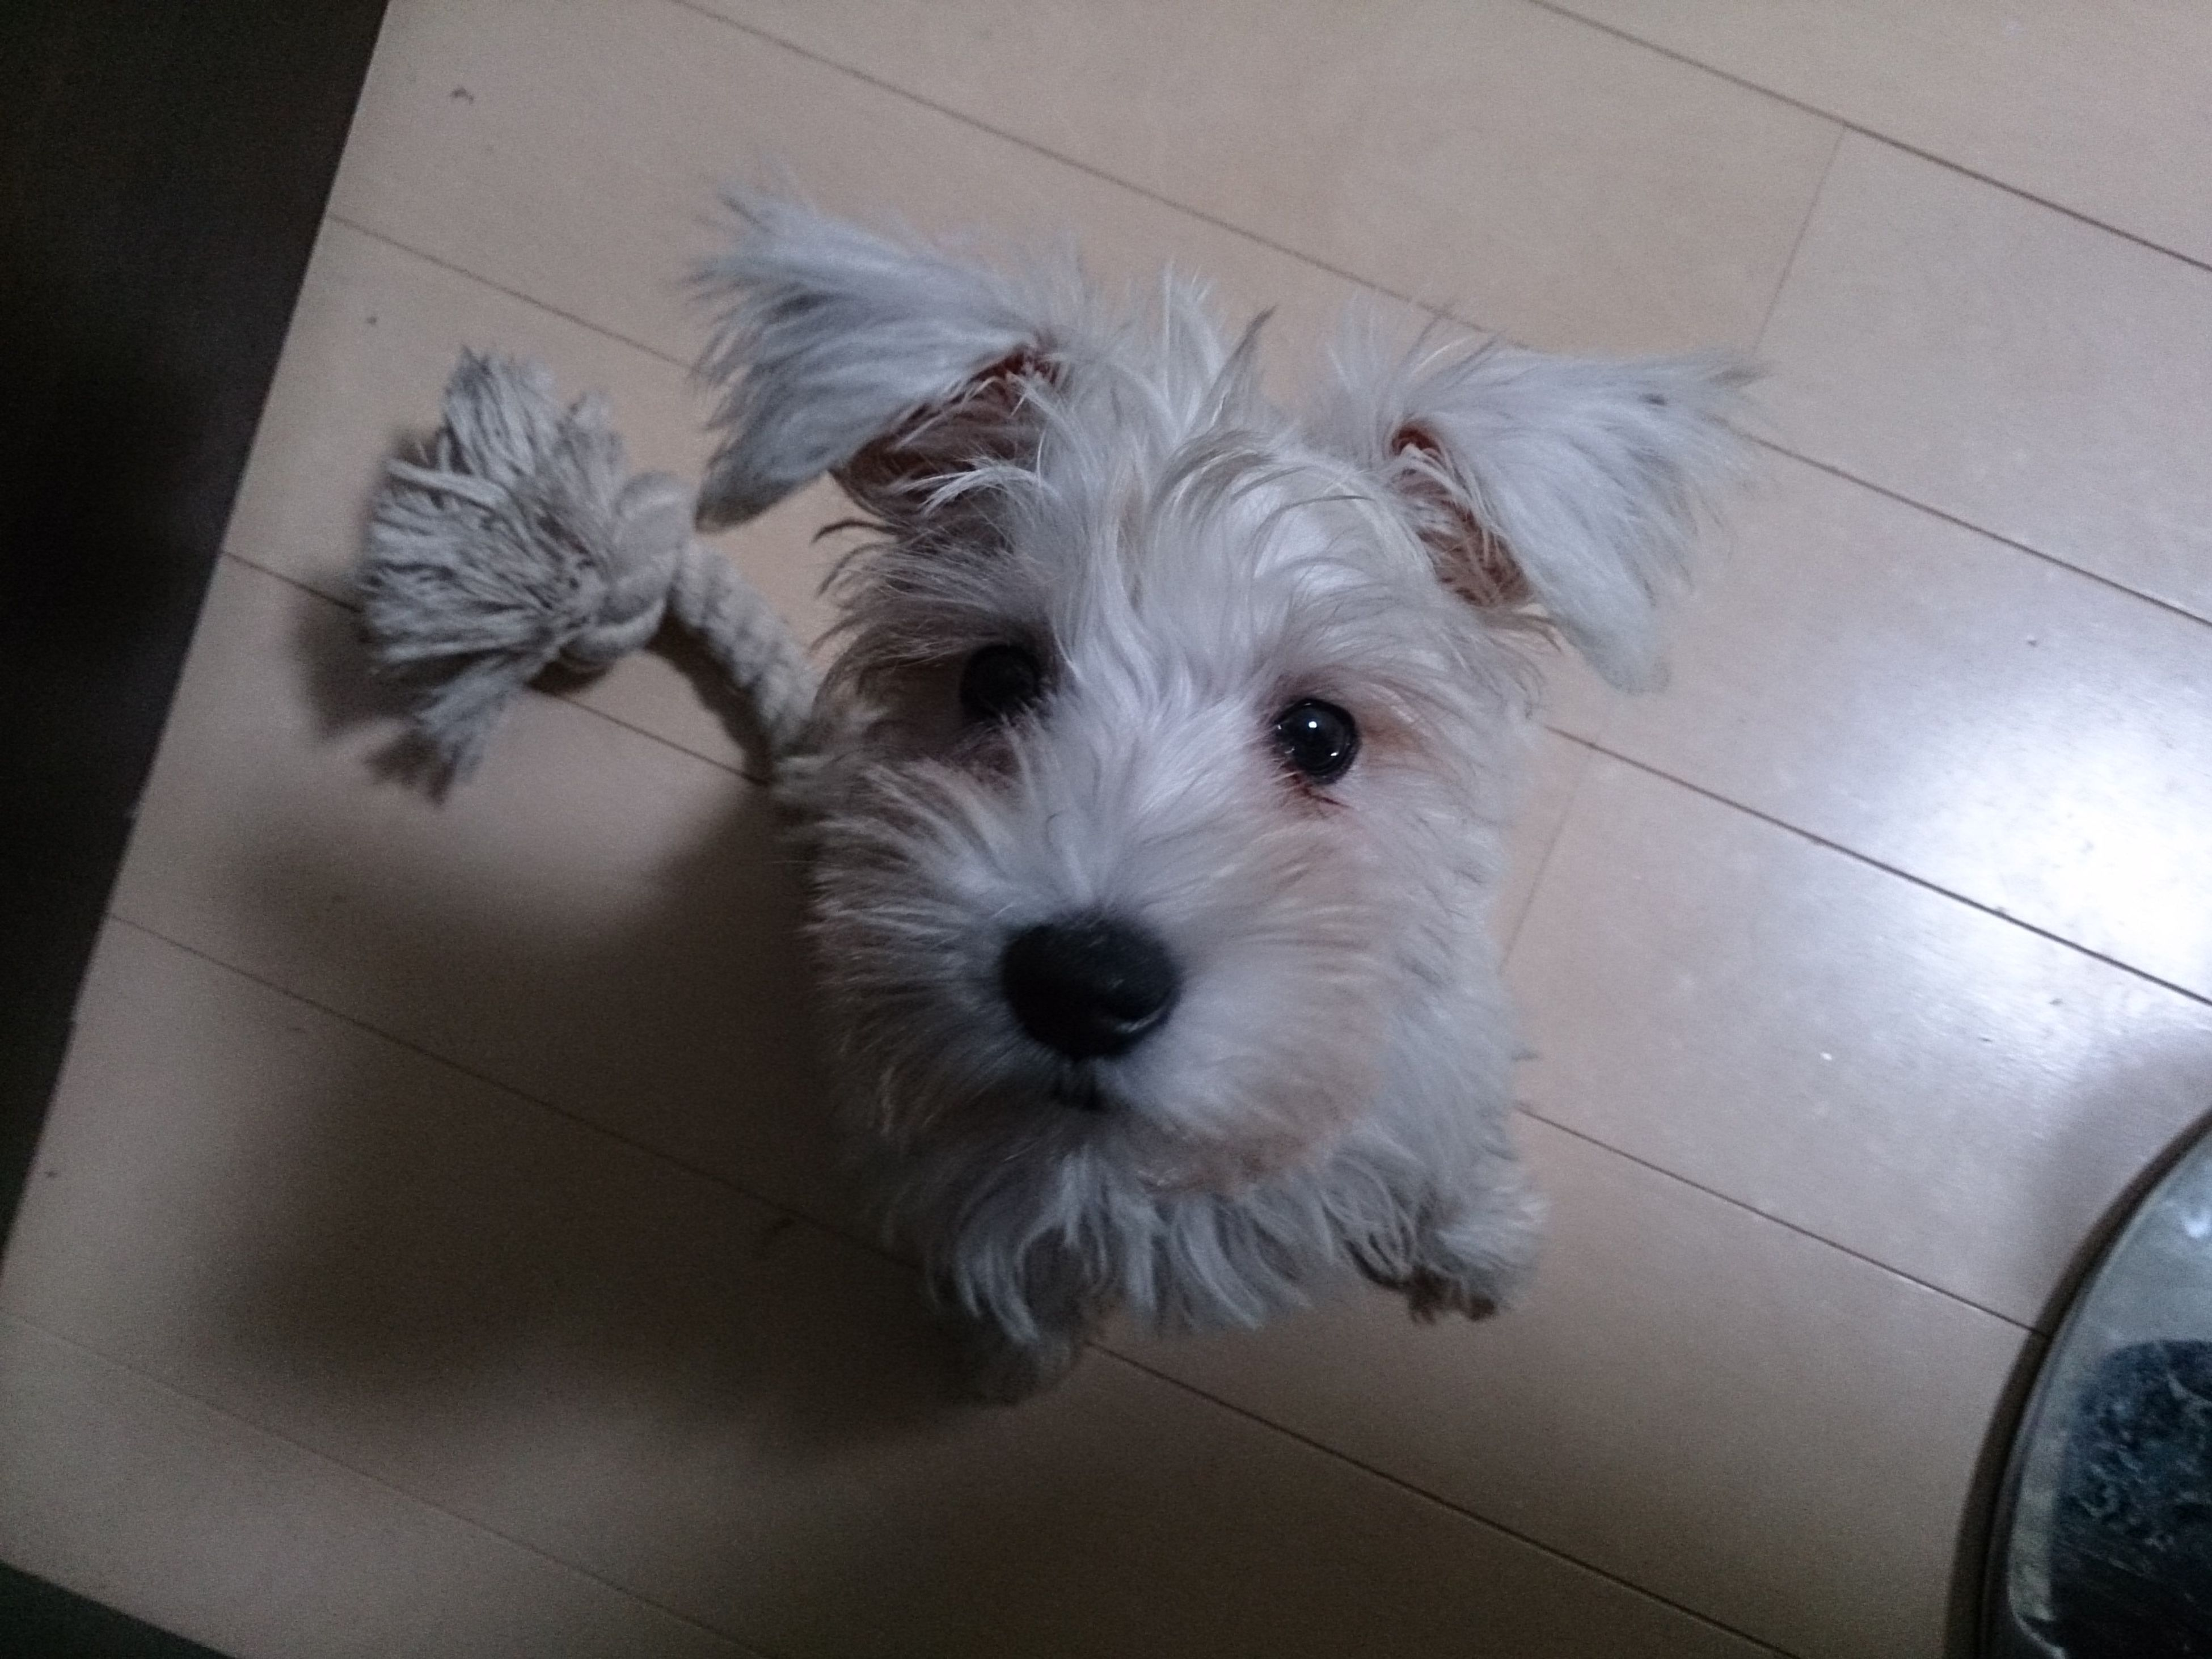 pets, domestic animals, one animal, animal themes, indoors, dog, looking at camera, portrait, mammal, white color, high angle view, close-up, no people, flooring, animal head, tiled floor, alertness, home interior, cute, front view